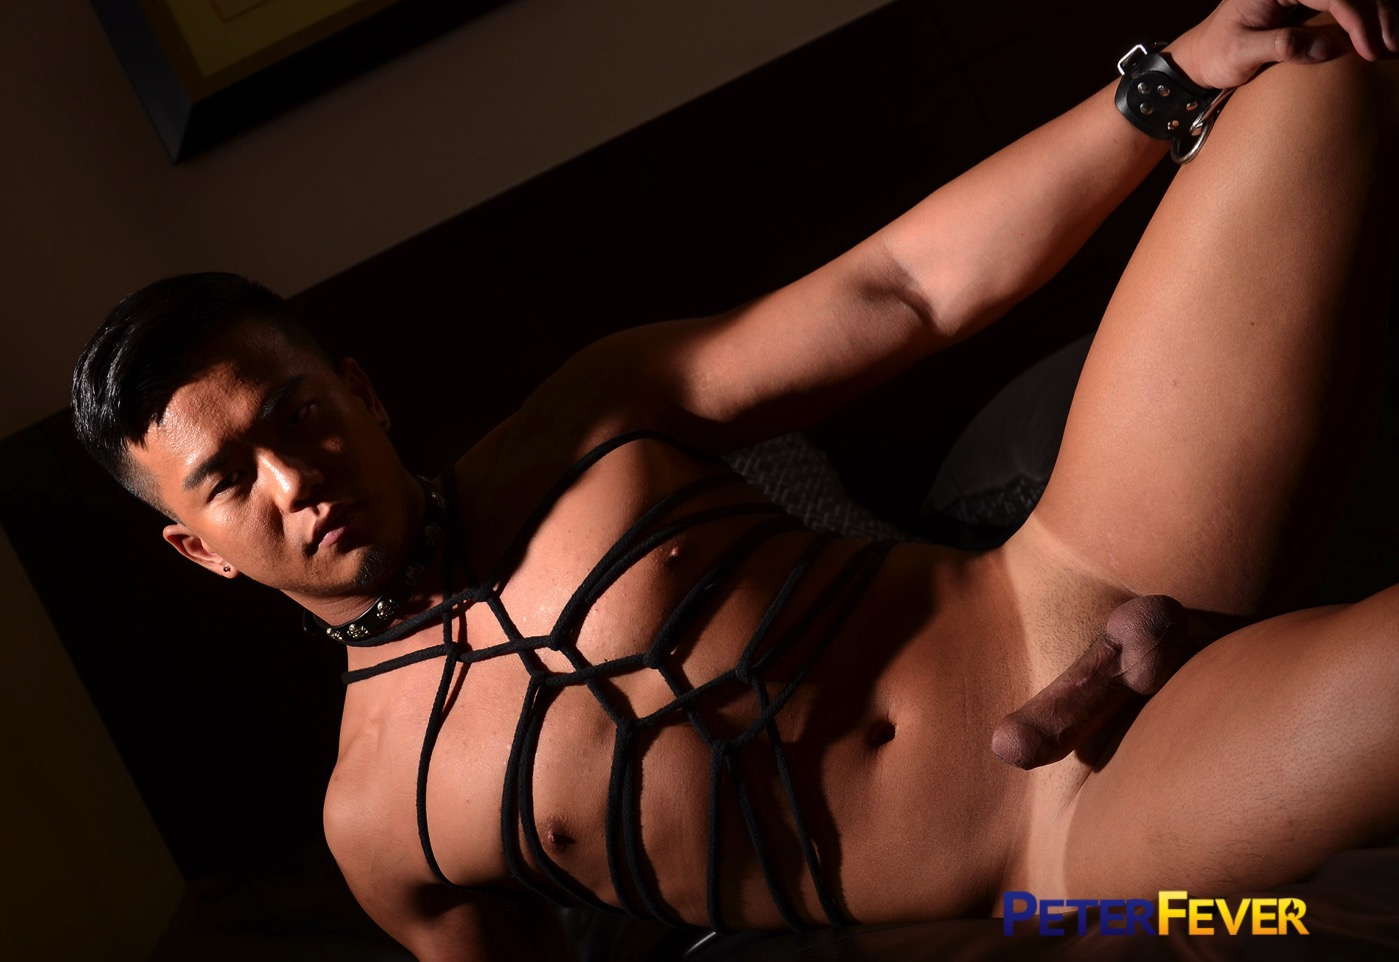 Alex is bound in leather straps from chest to throat